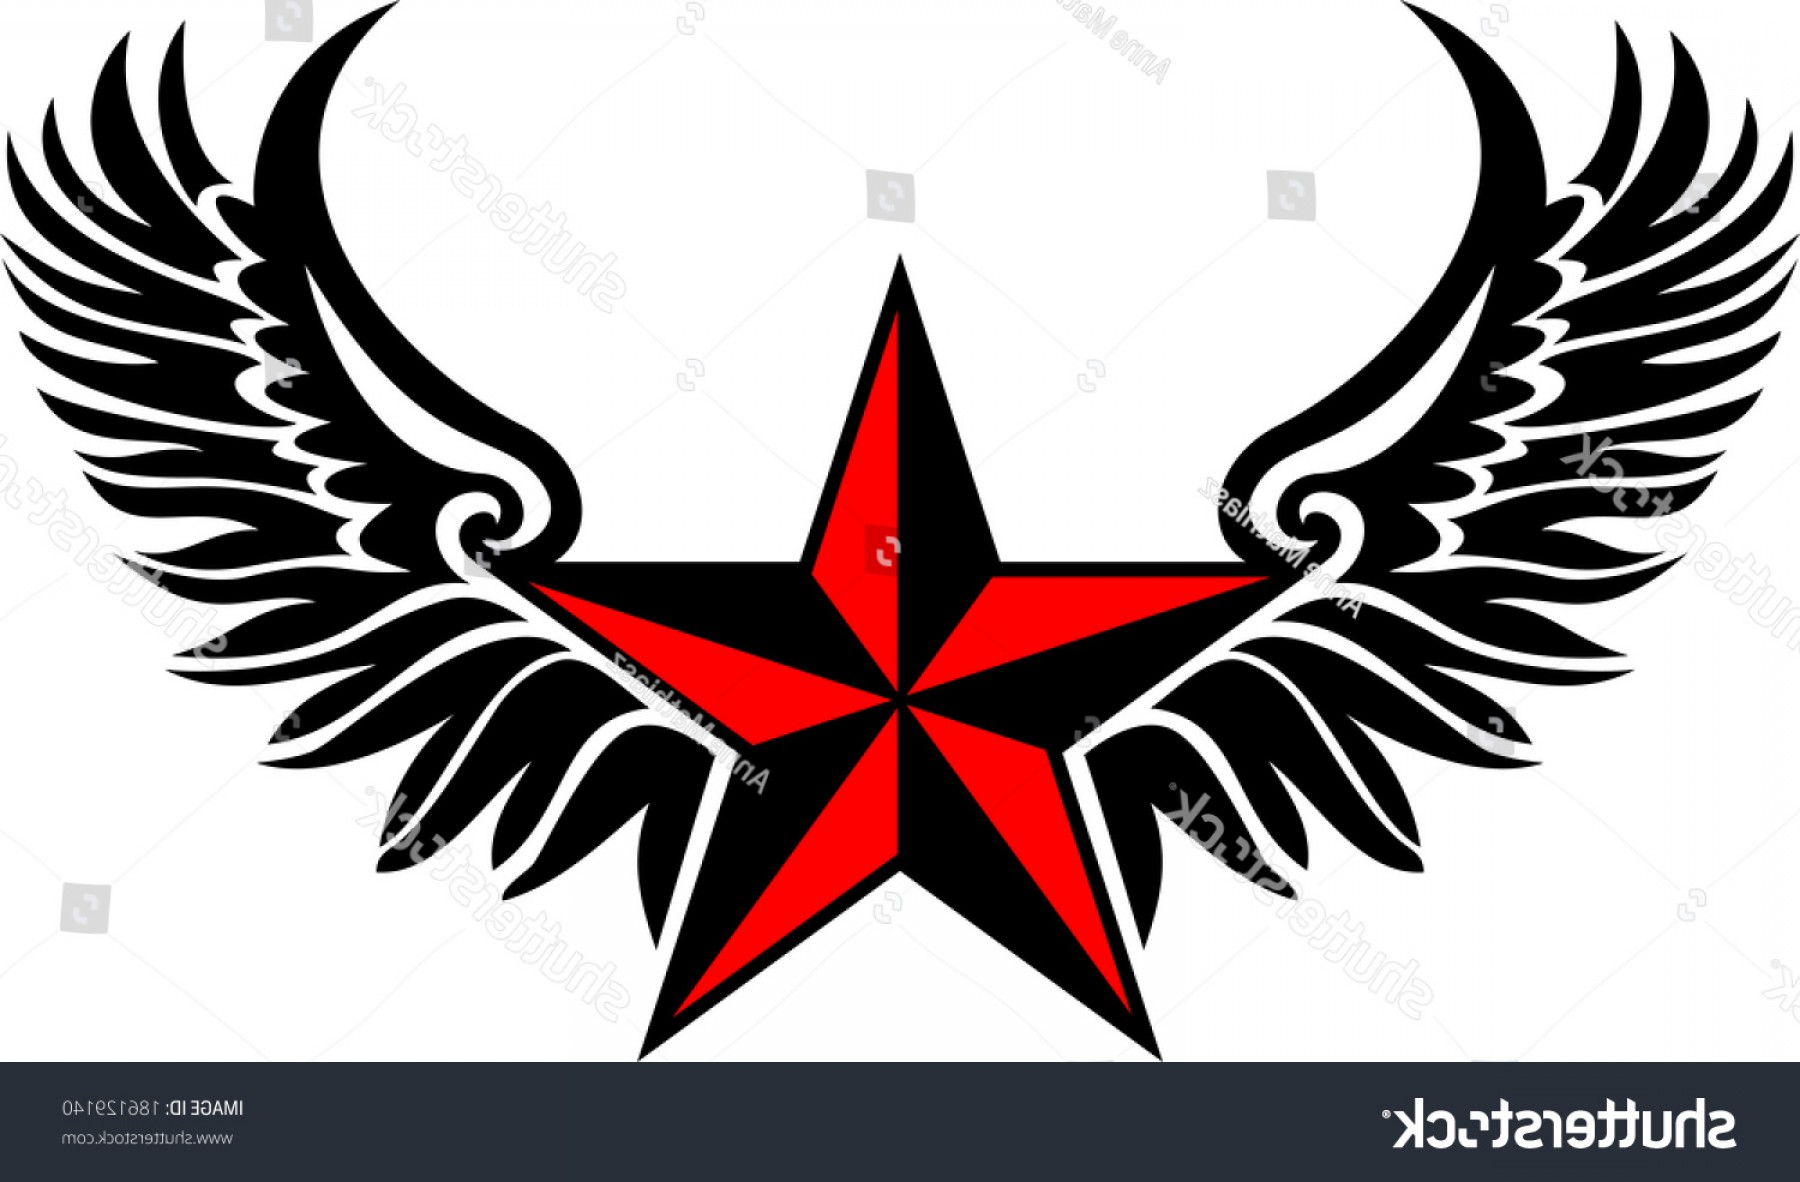 Nautical Star Vector Logo: Nautical Star Wings Protection Guidance